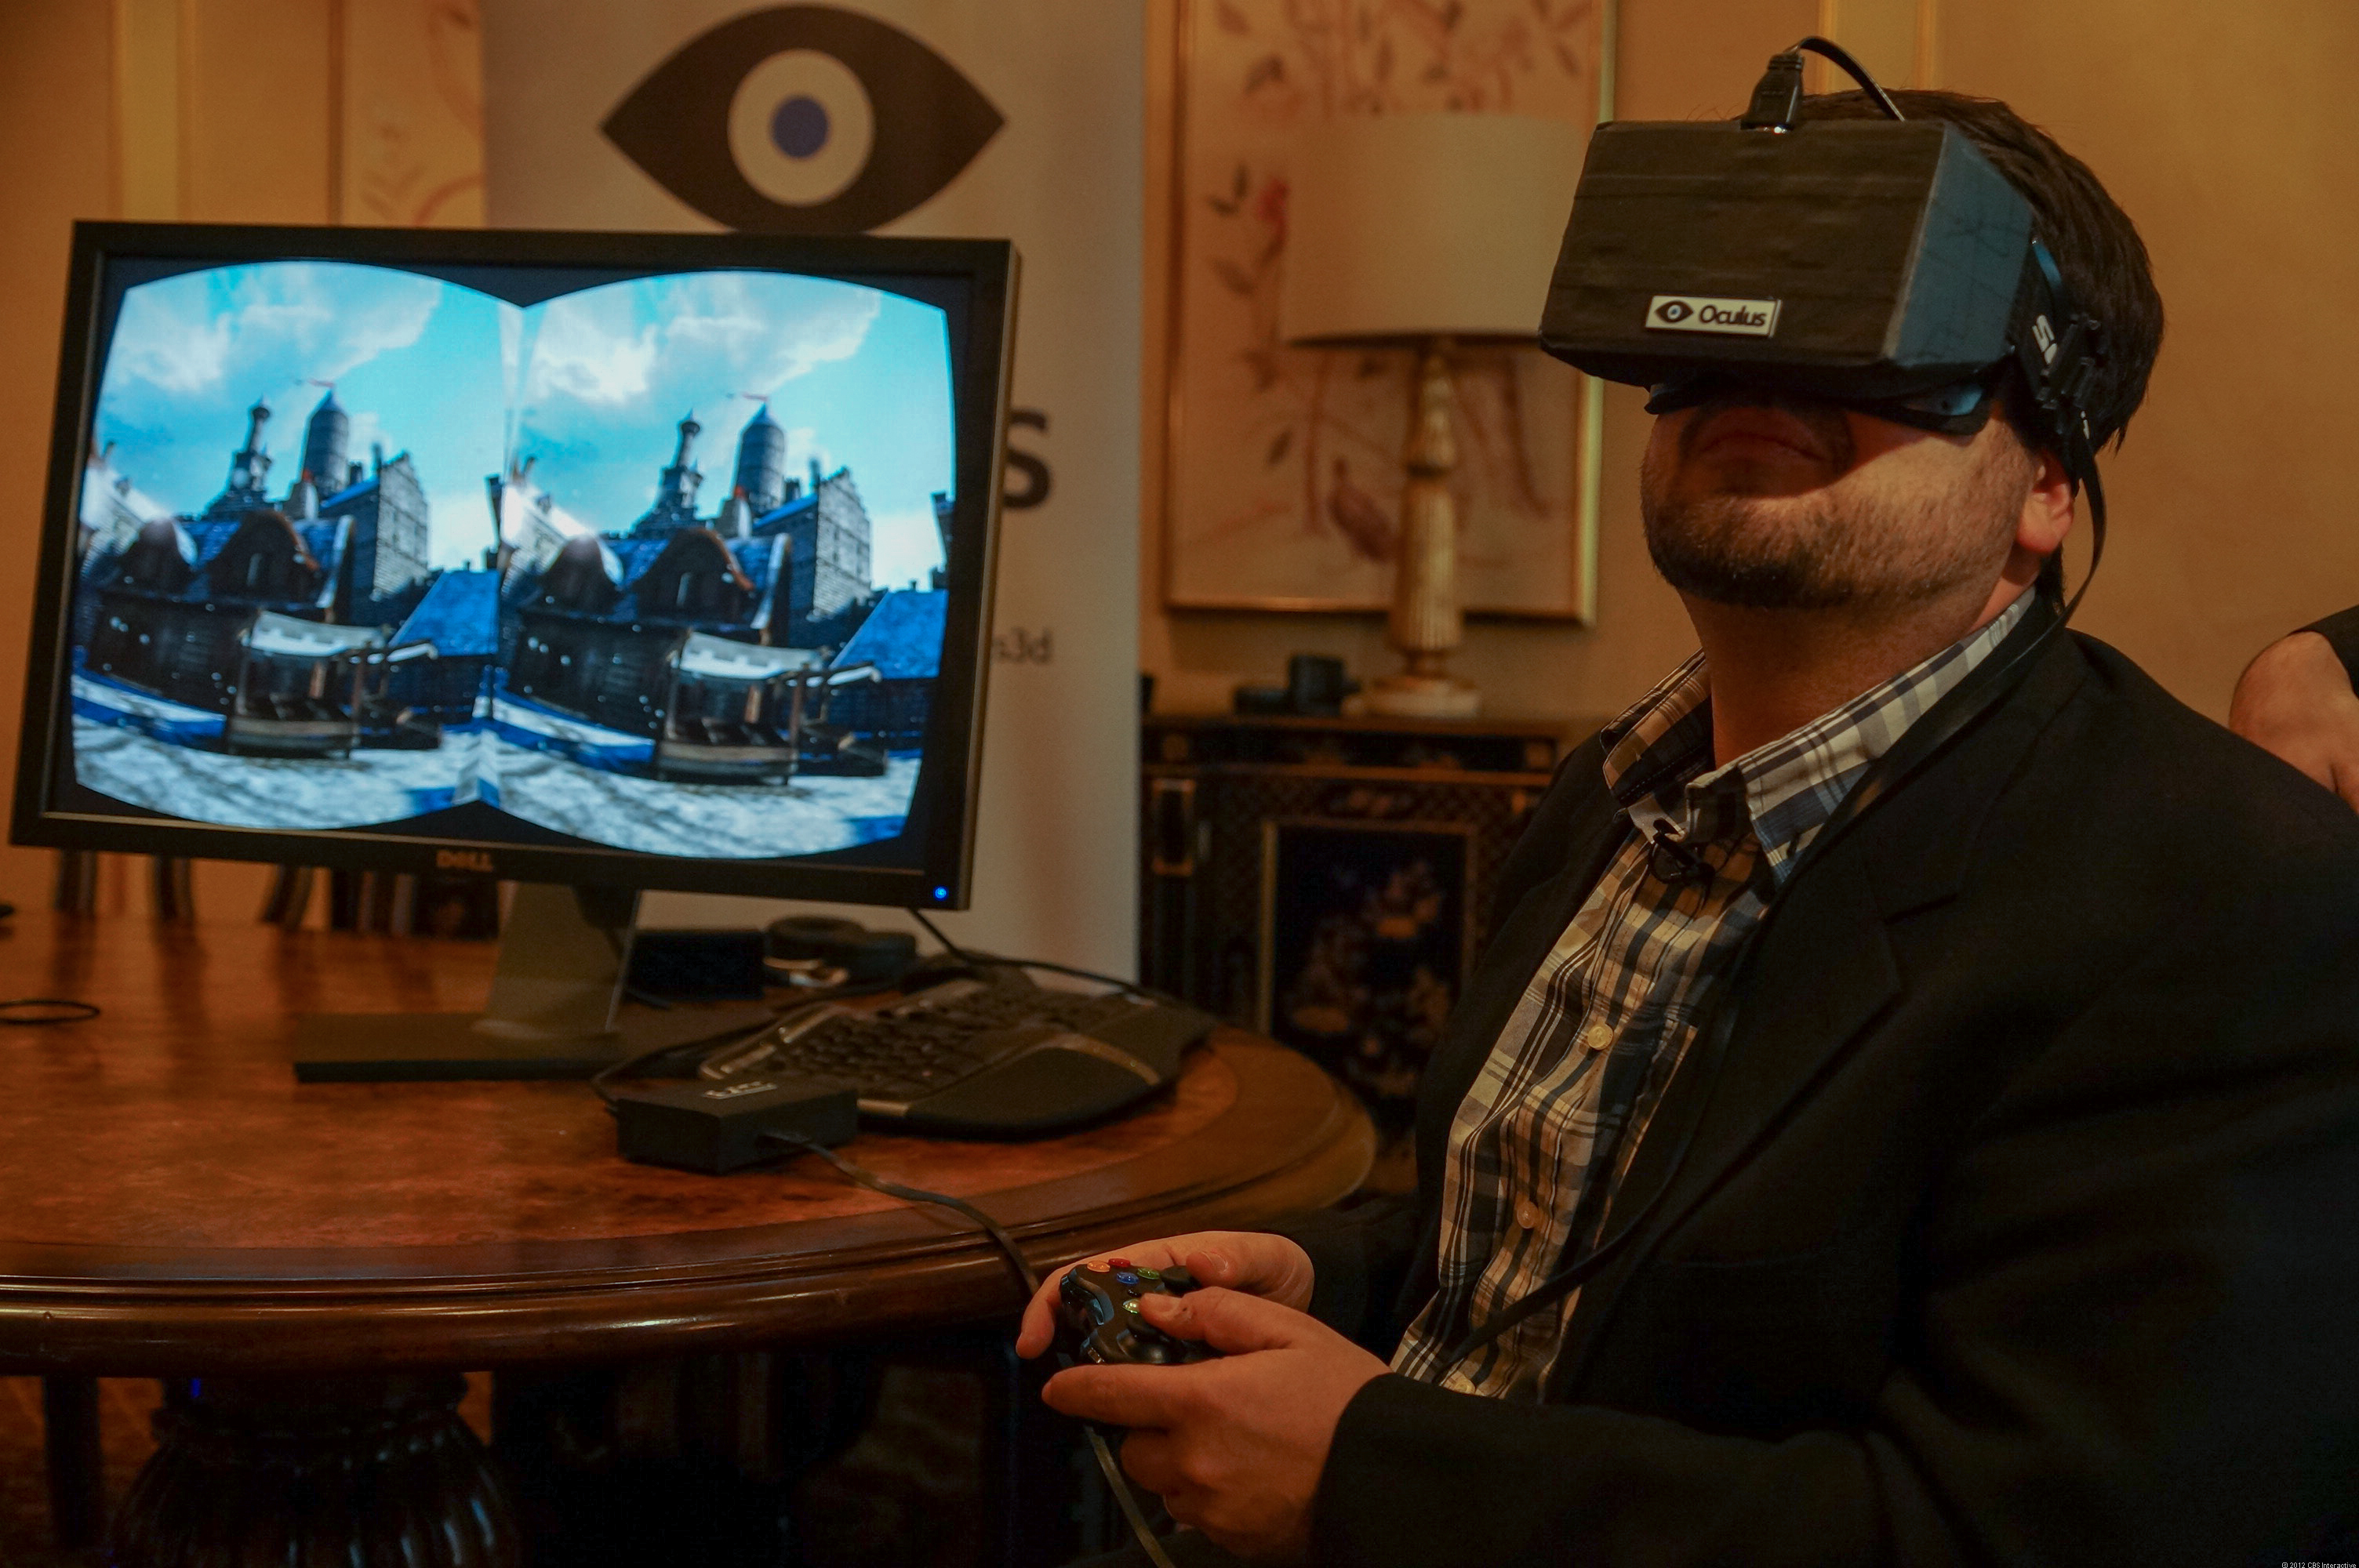 Trying out the Oculus Rift VR headset in 2013